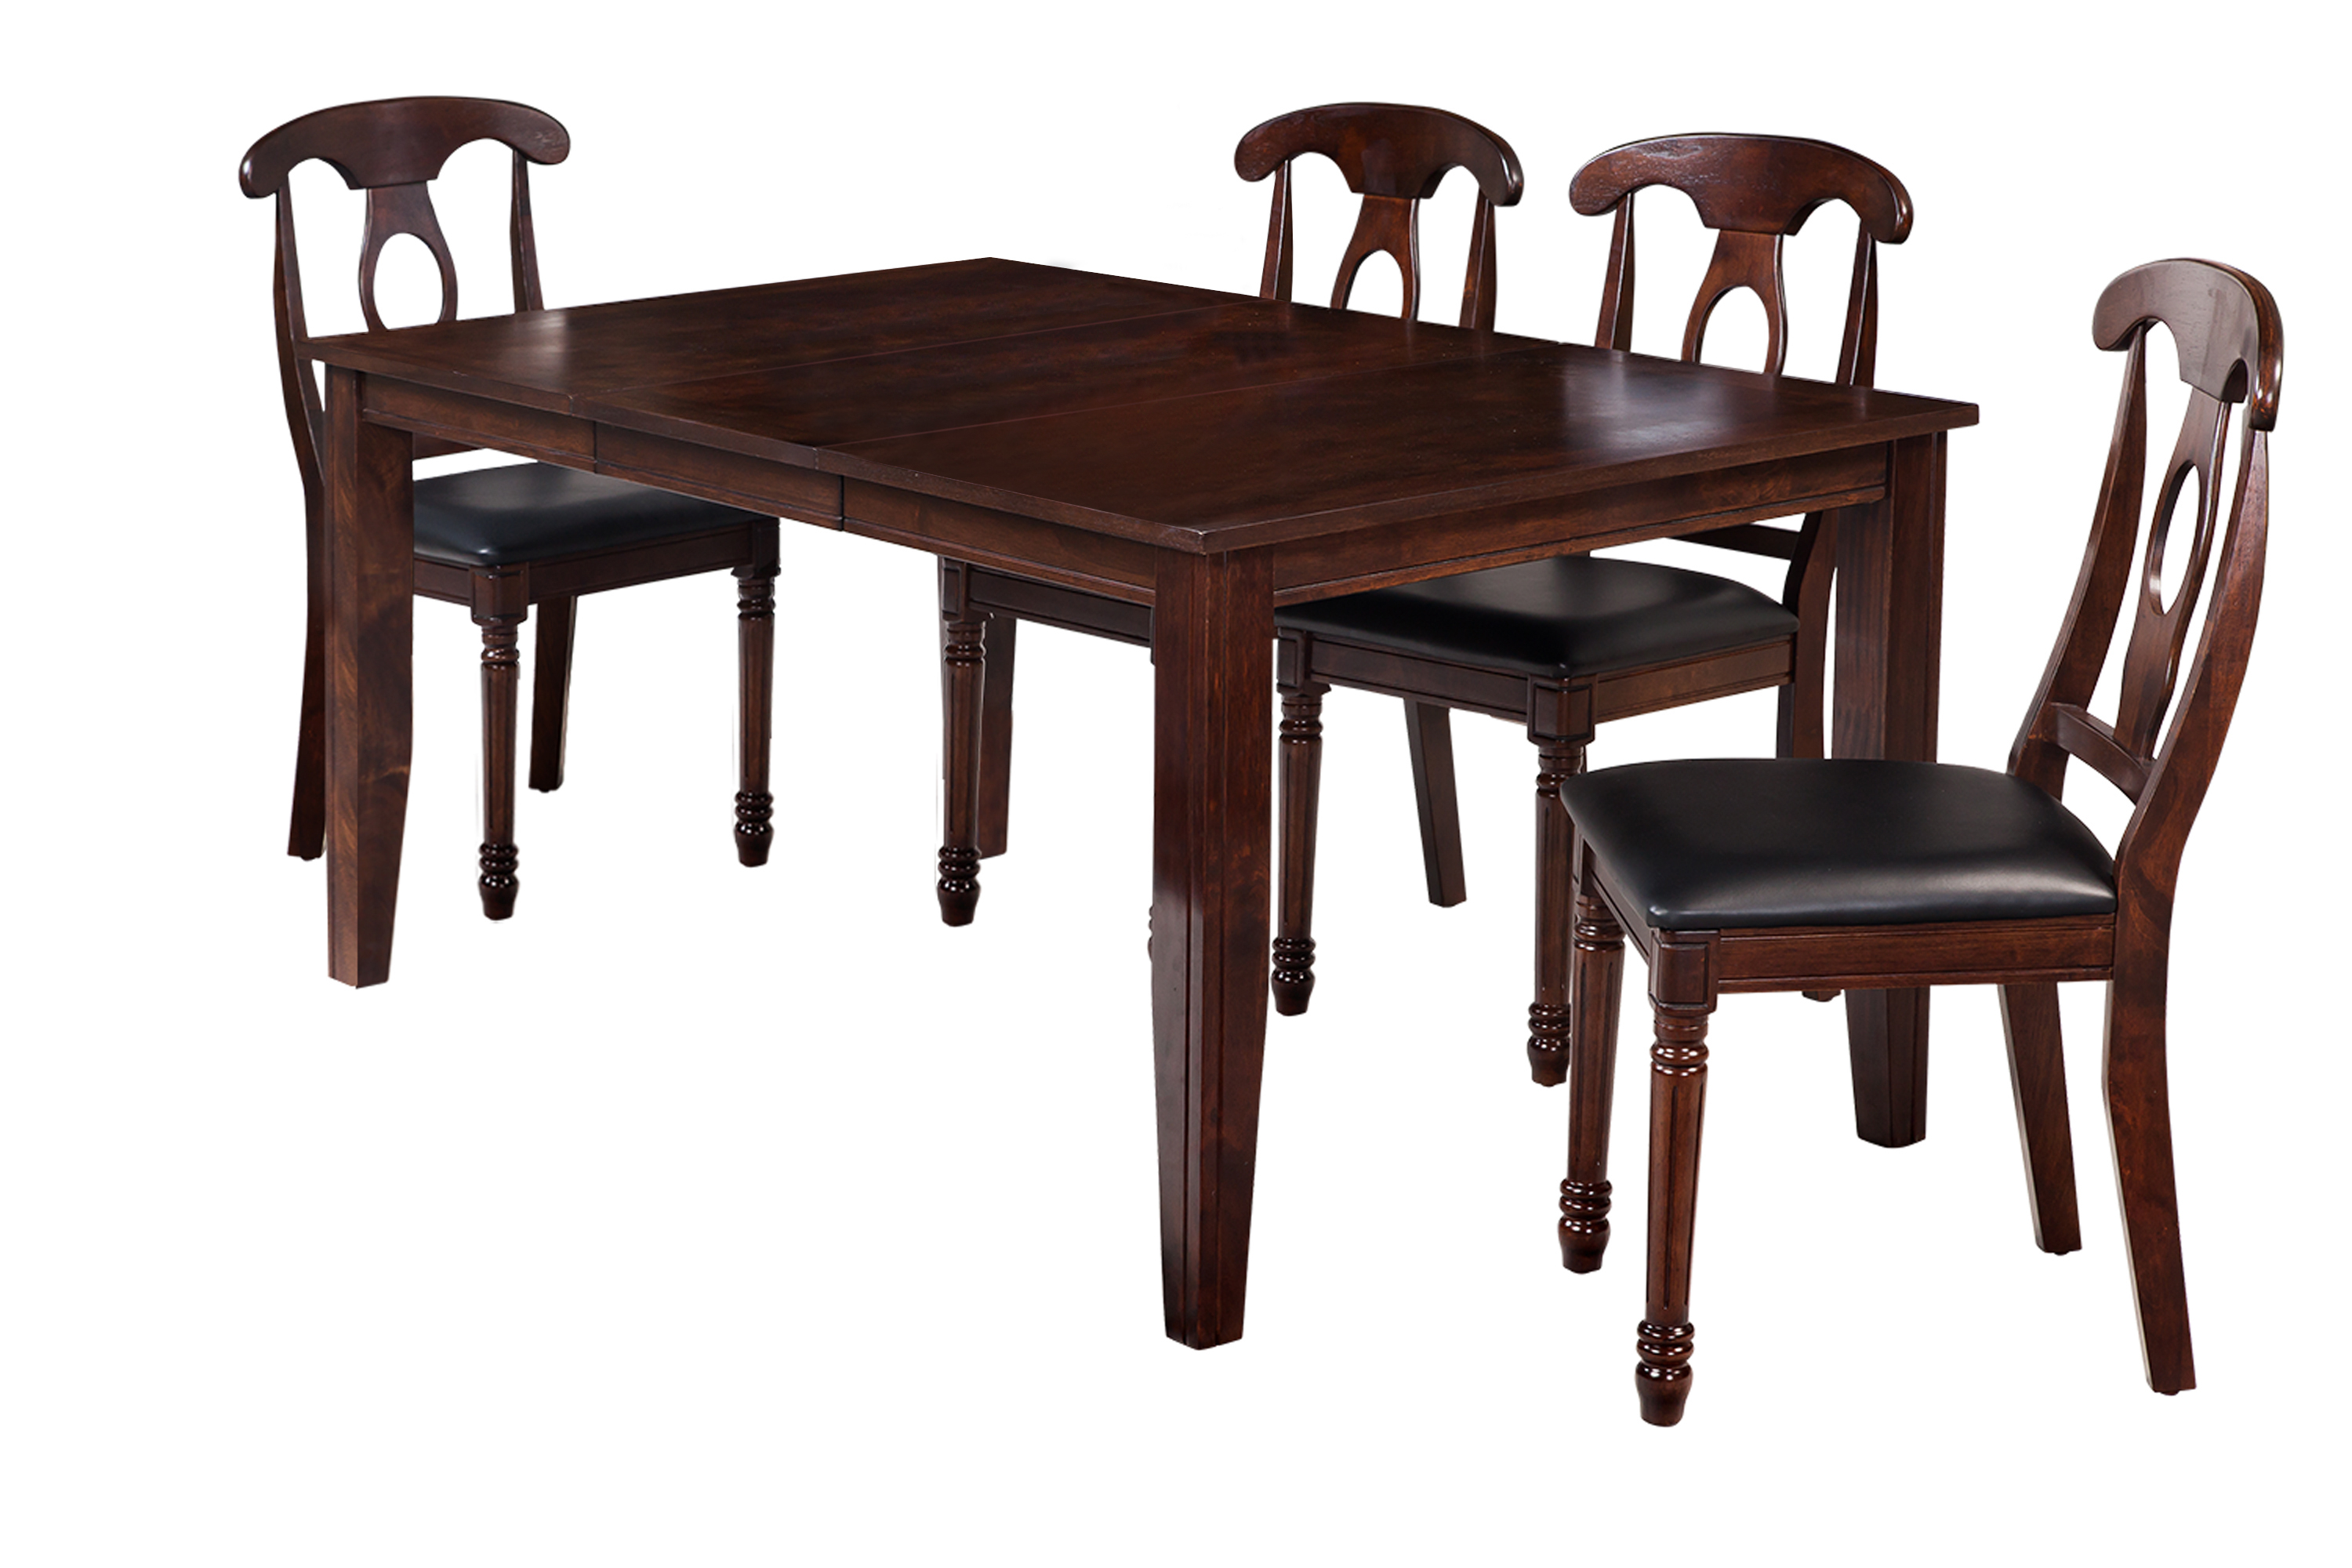 Ttp Furnish In Most Current Adan 5 Piece Solid Wood Dining Sets (Set Of 5) (Image 18 of 20)